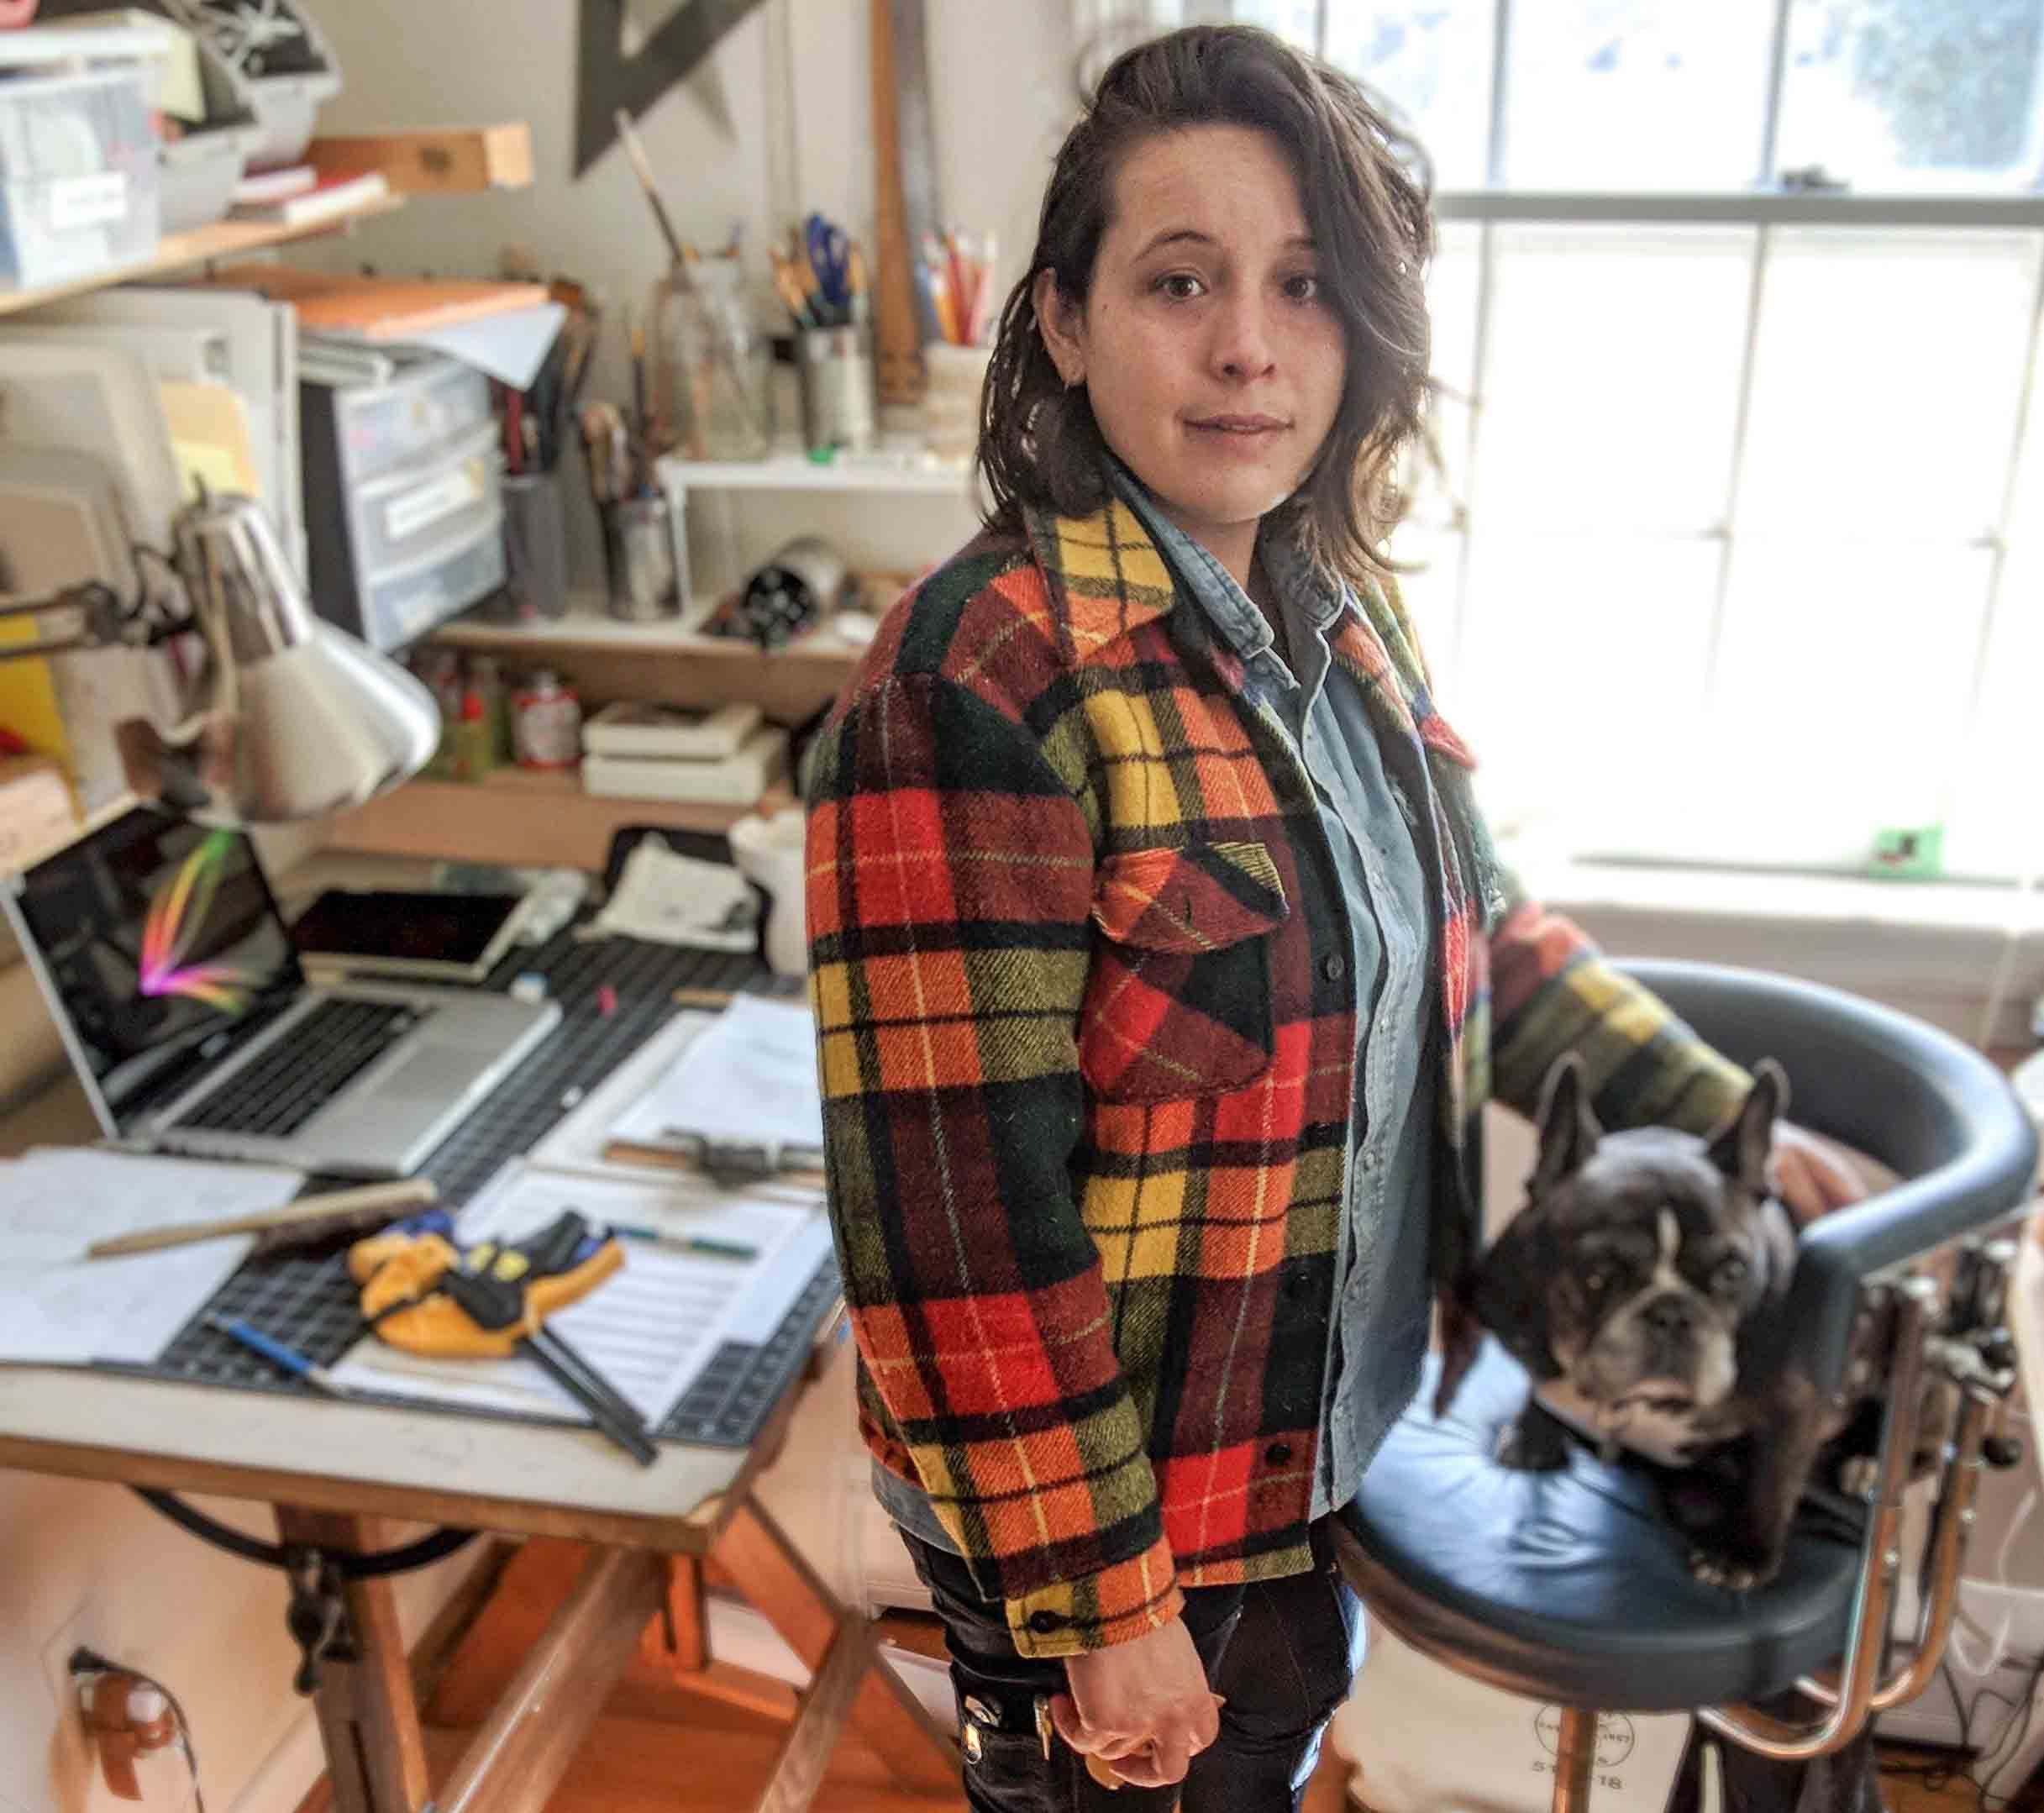 Women to Watch: Artist Nikki Leone